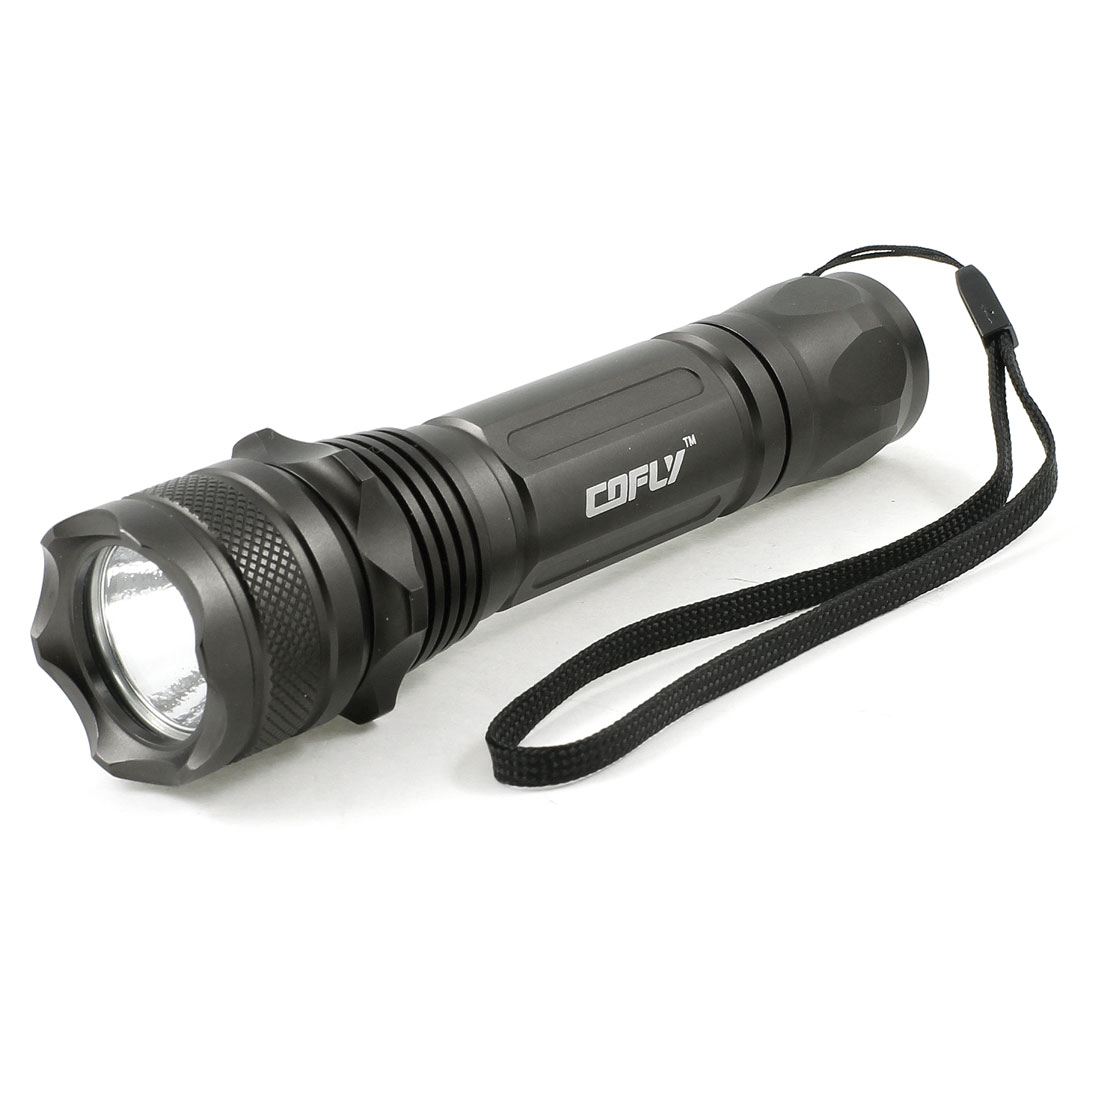 "Camping Black Housing 850LM 3 Modes White LED Light Flashlight 5.3"" Long"